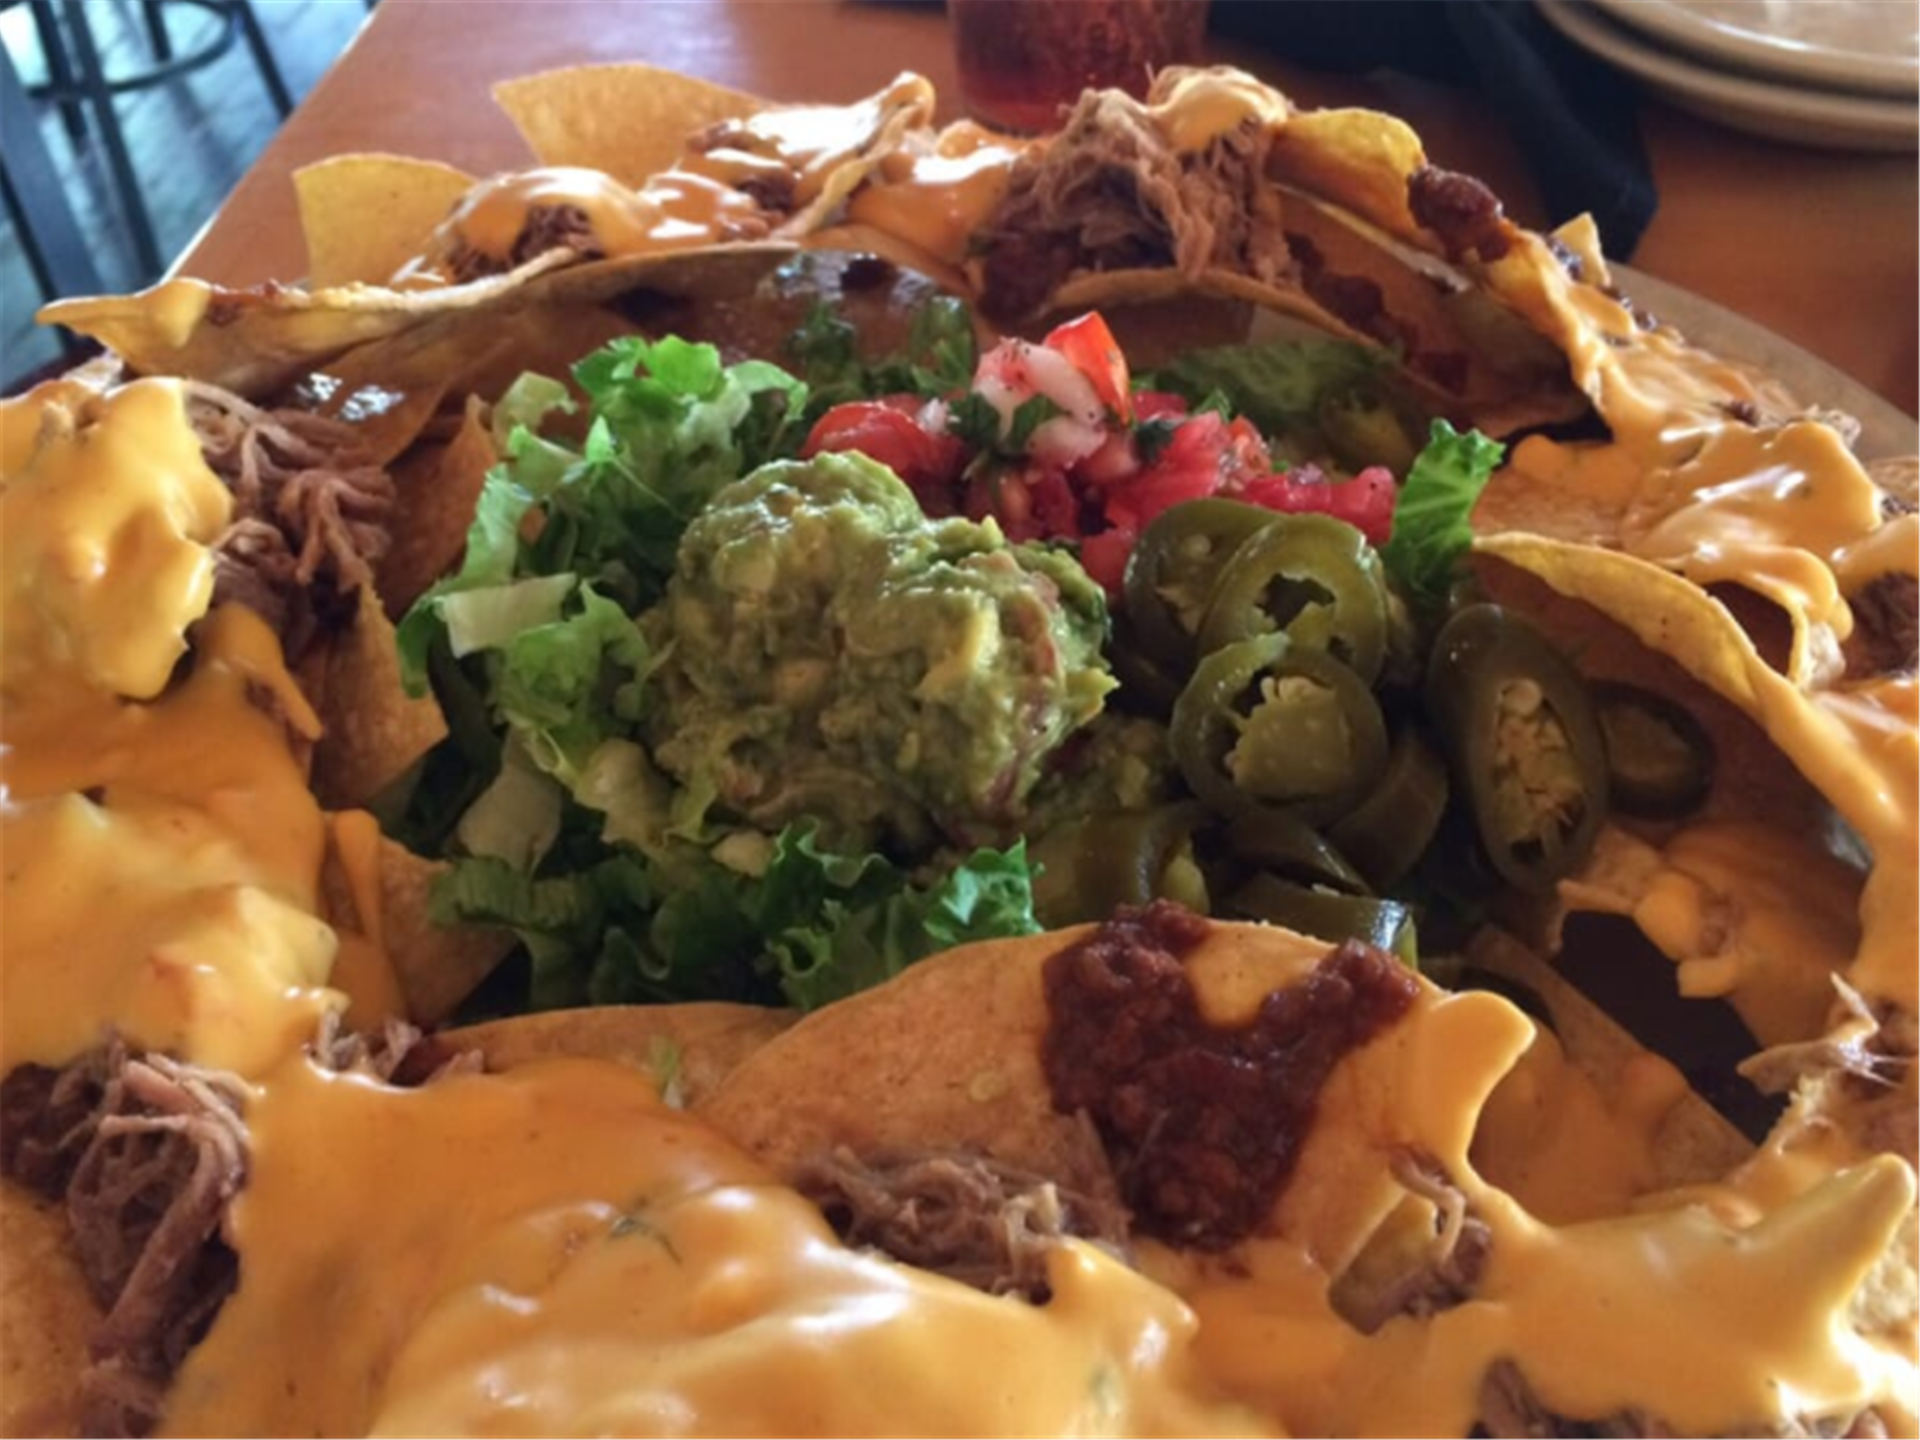 nachos topped with cheese, beans and guacamole